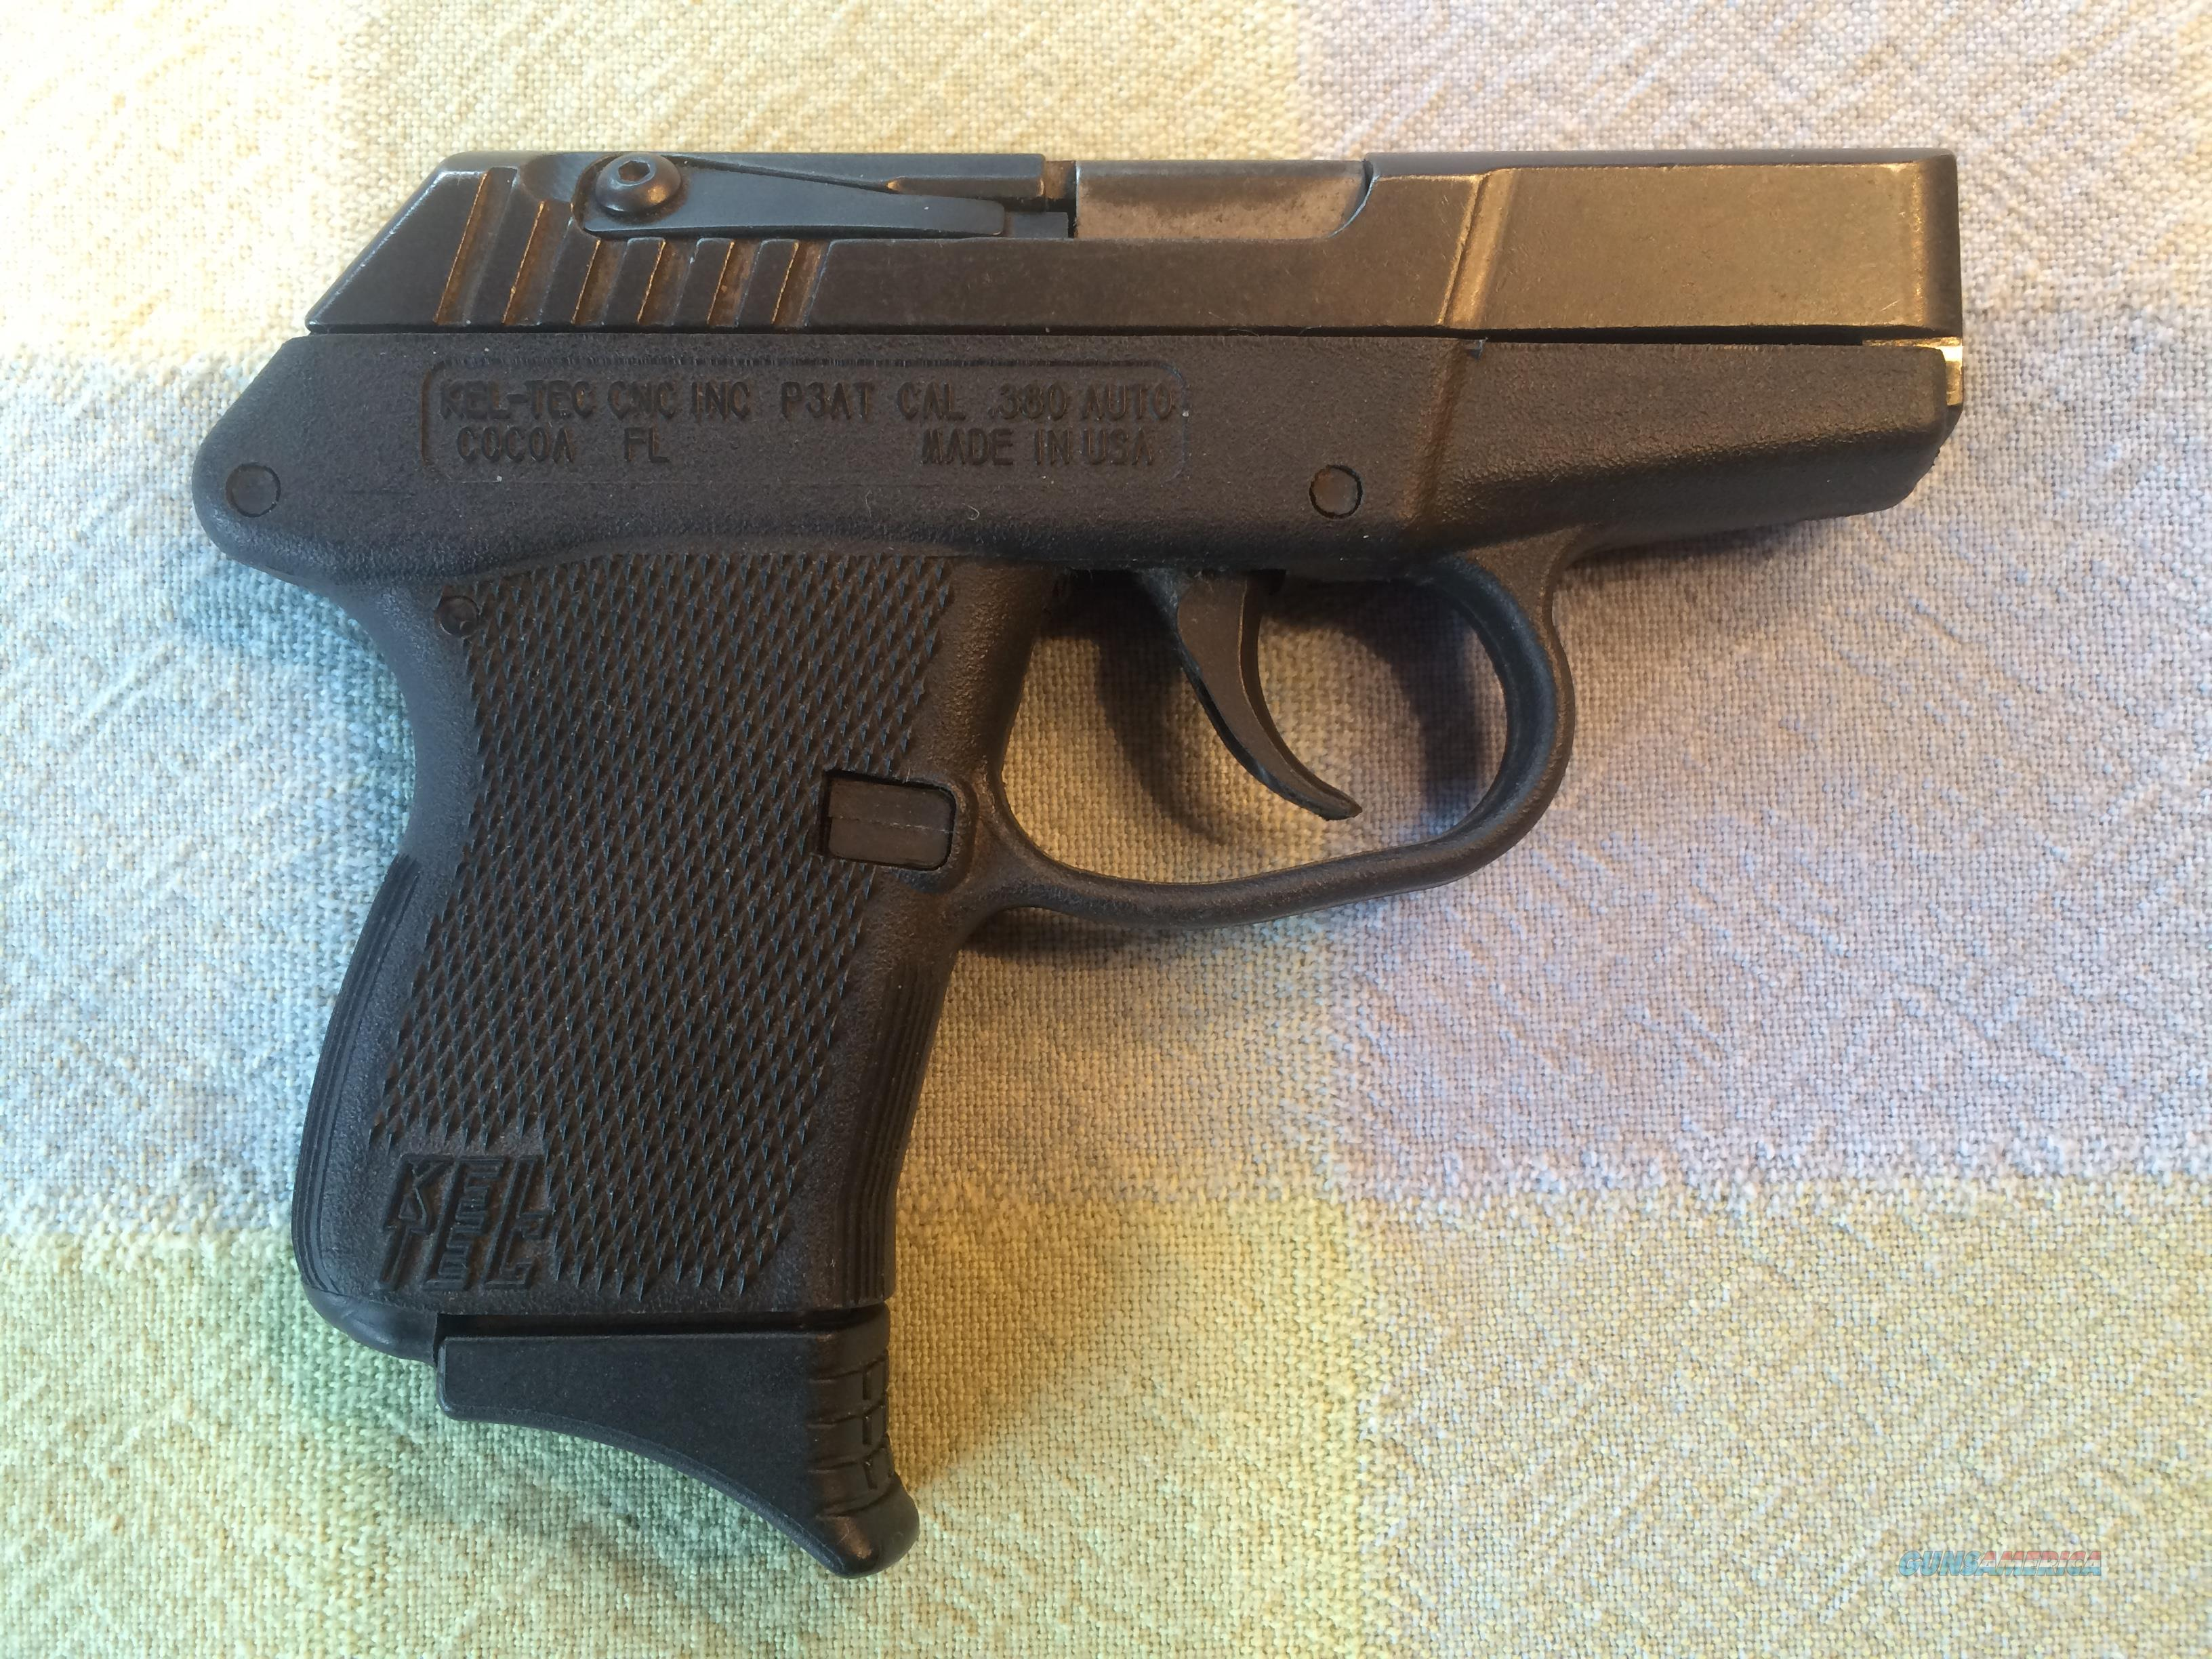 KEL-TEC - MODEL P3AT - .380 SEMI-AUTO - EXTENDED CLIP - USED  Guns > Pistols > Kel-Tec Pistols > Pocket Pistol Type